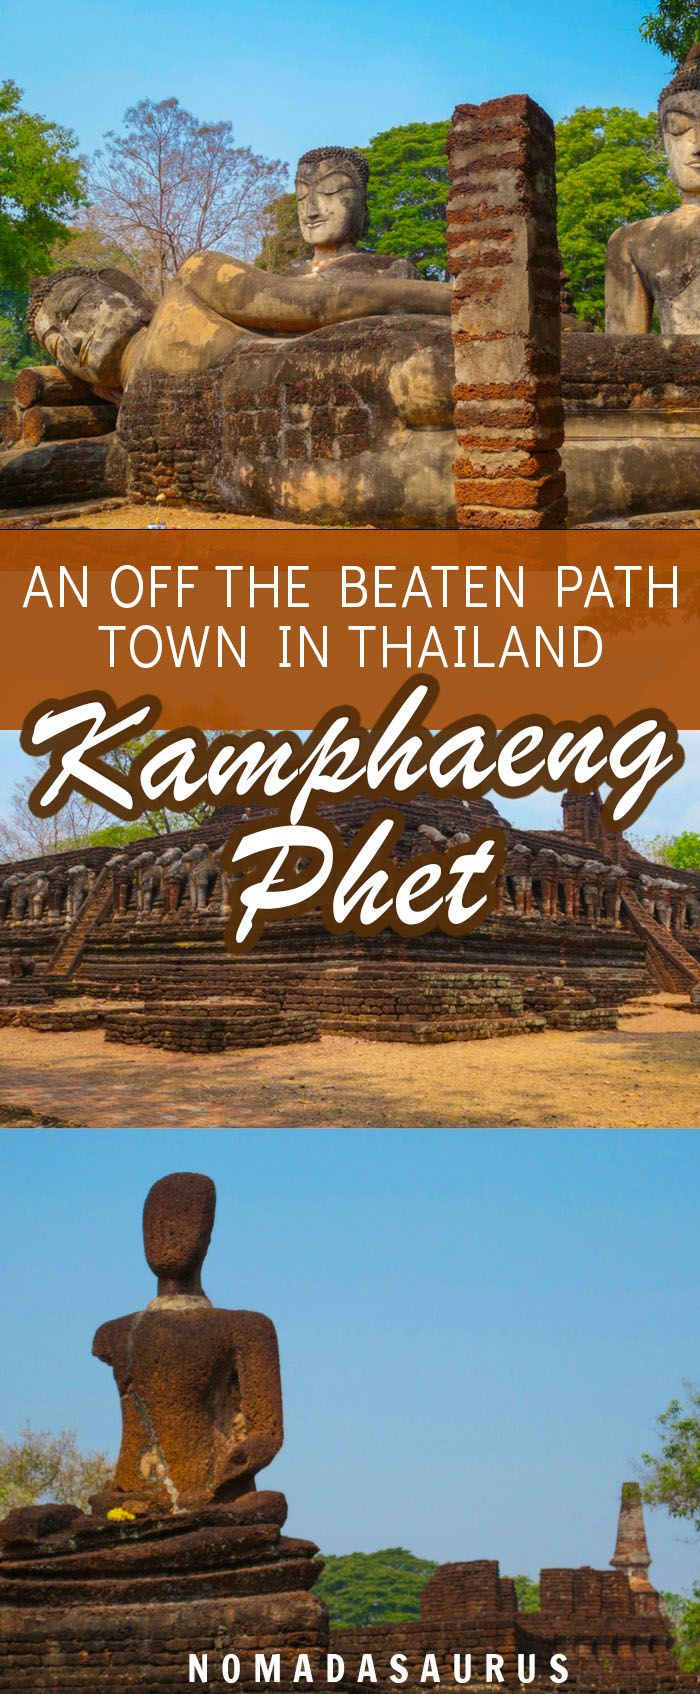 ooking for things to do off the beaten path in Thailand? Then here's why you need to visit Kamphaeng Phet! #thailand #thailandtravel